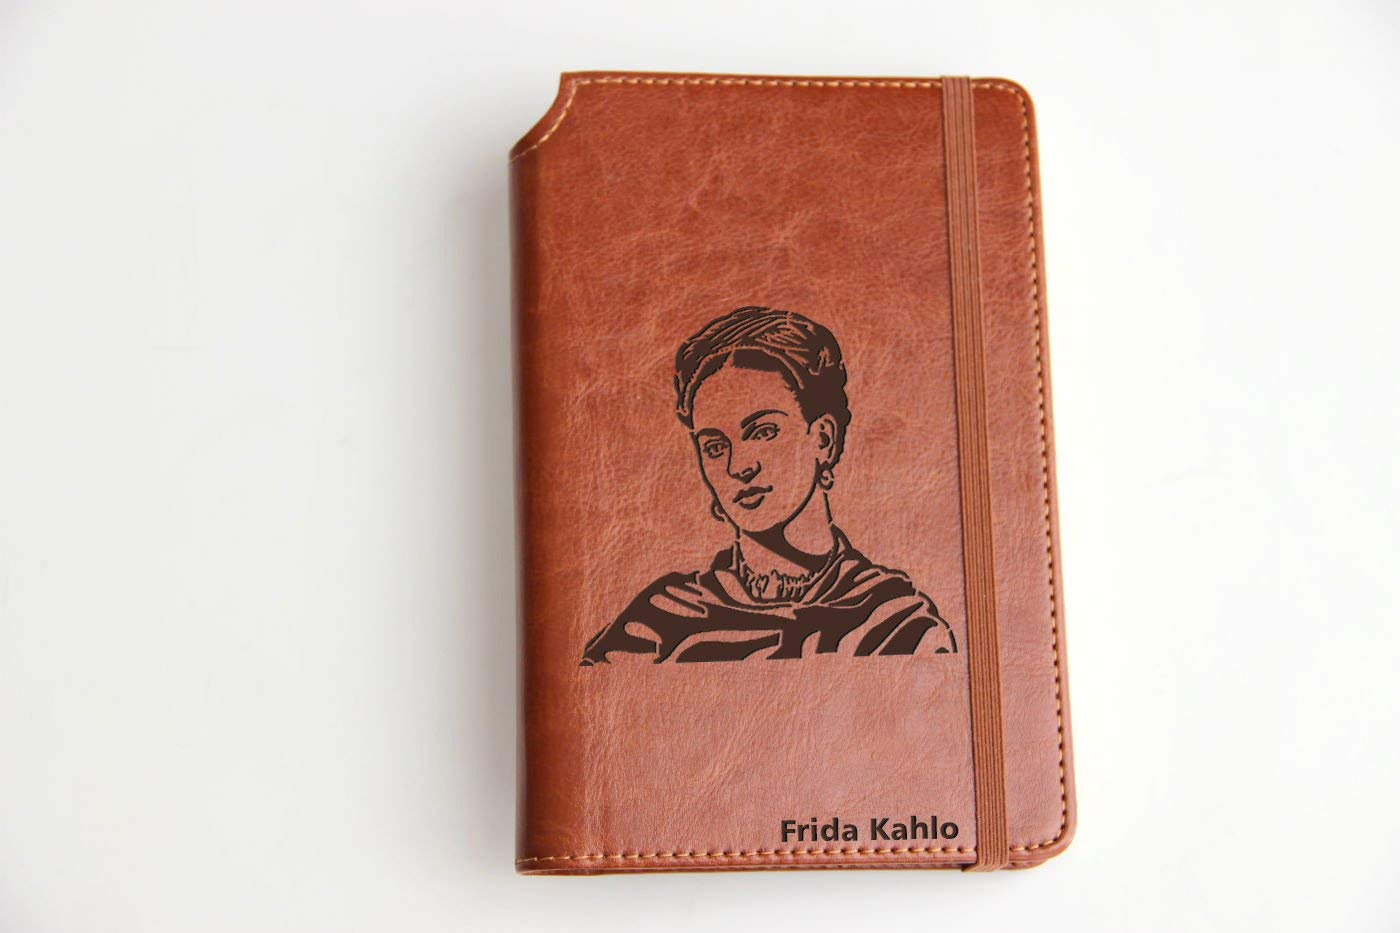 Frida Kahlo illustrated Journal Customizable laser engraved Fully Customizable laser engraved personalized Journal with custom quote custom text leather bound with elastic band with the same color